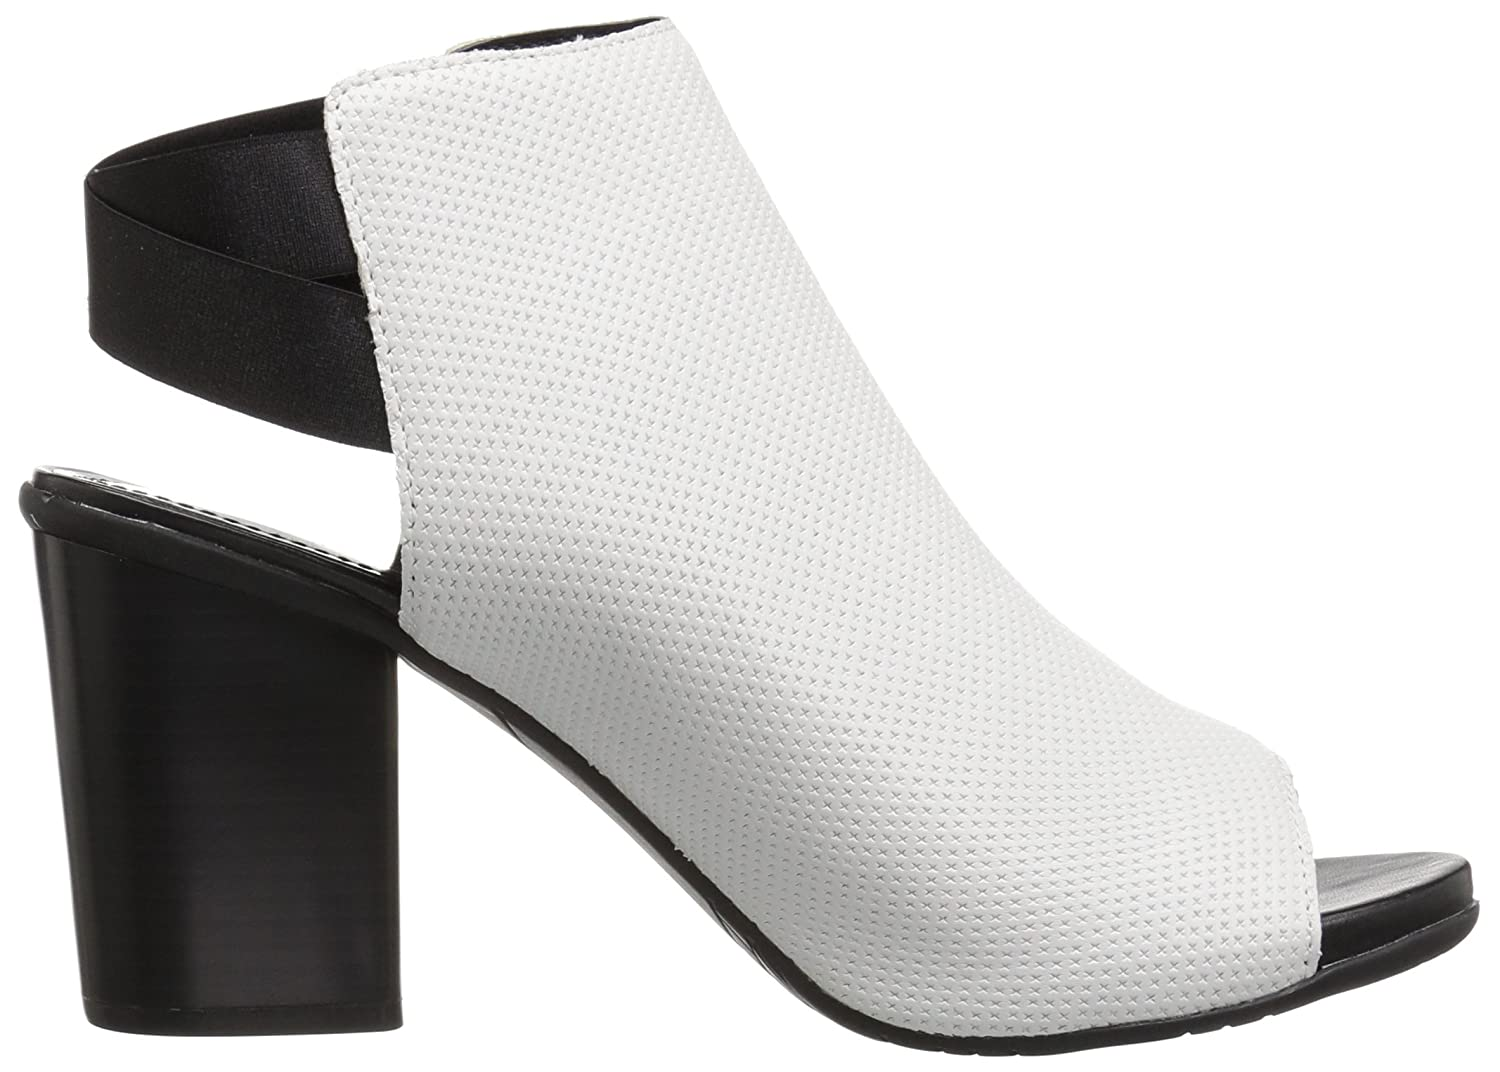 Kenneth Cole REACTION Women's Fridah Fly Toe and Open Heel Bootie Ankle Boot B077Y52CC6 7 B(M) US|White